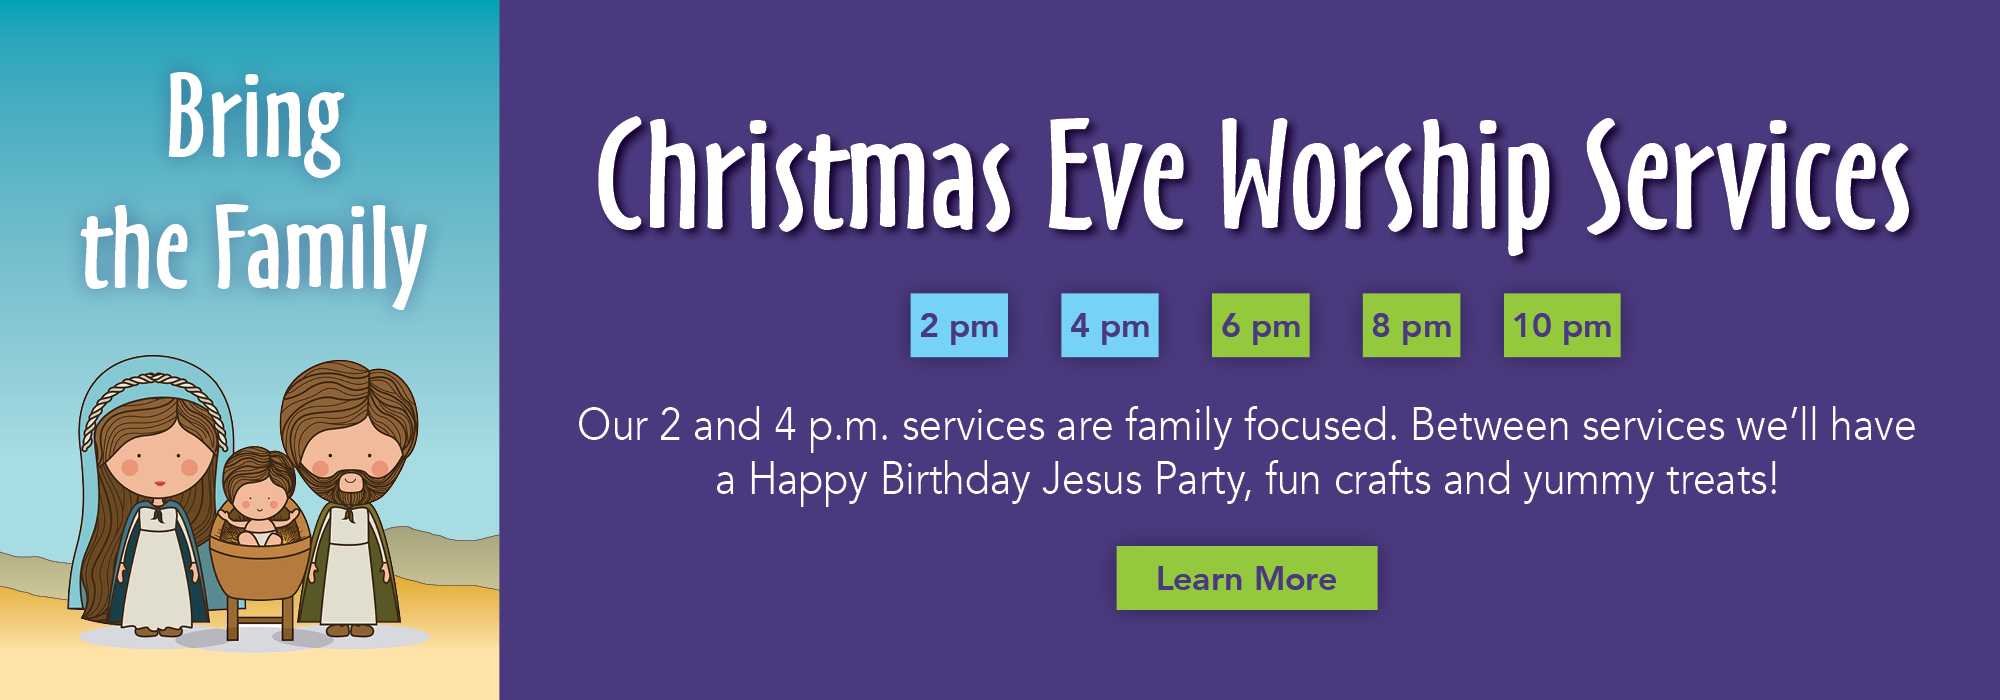 ChristmasEve-Services